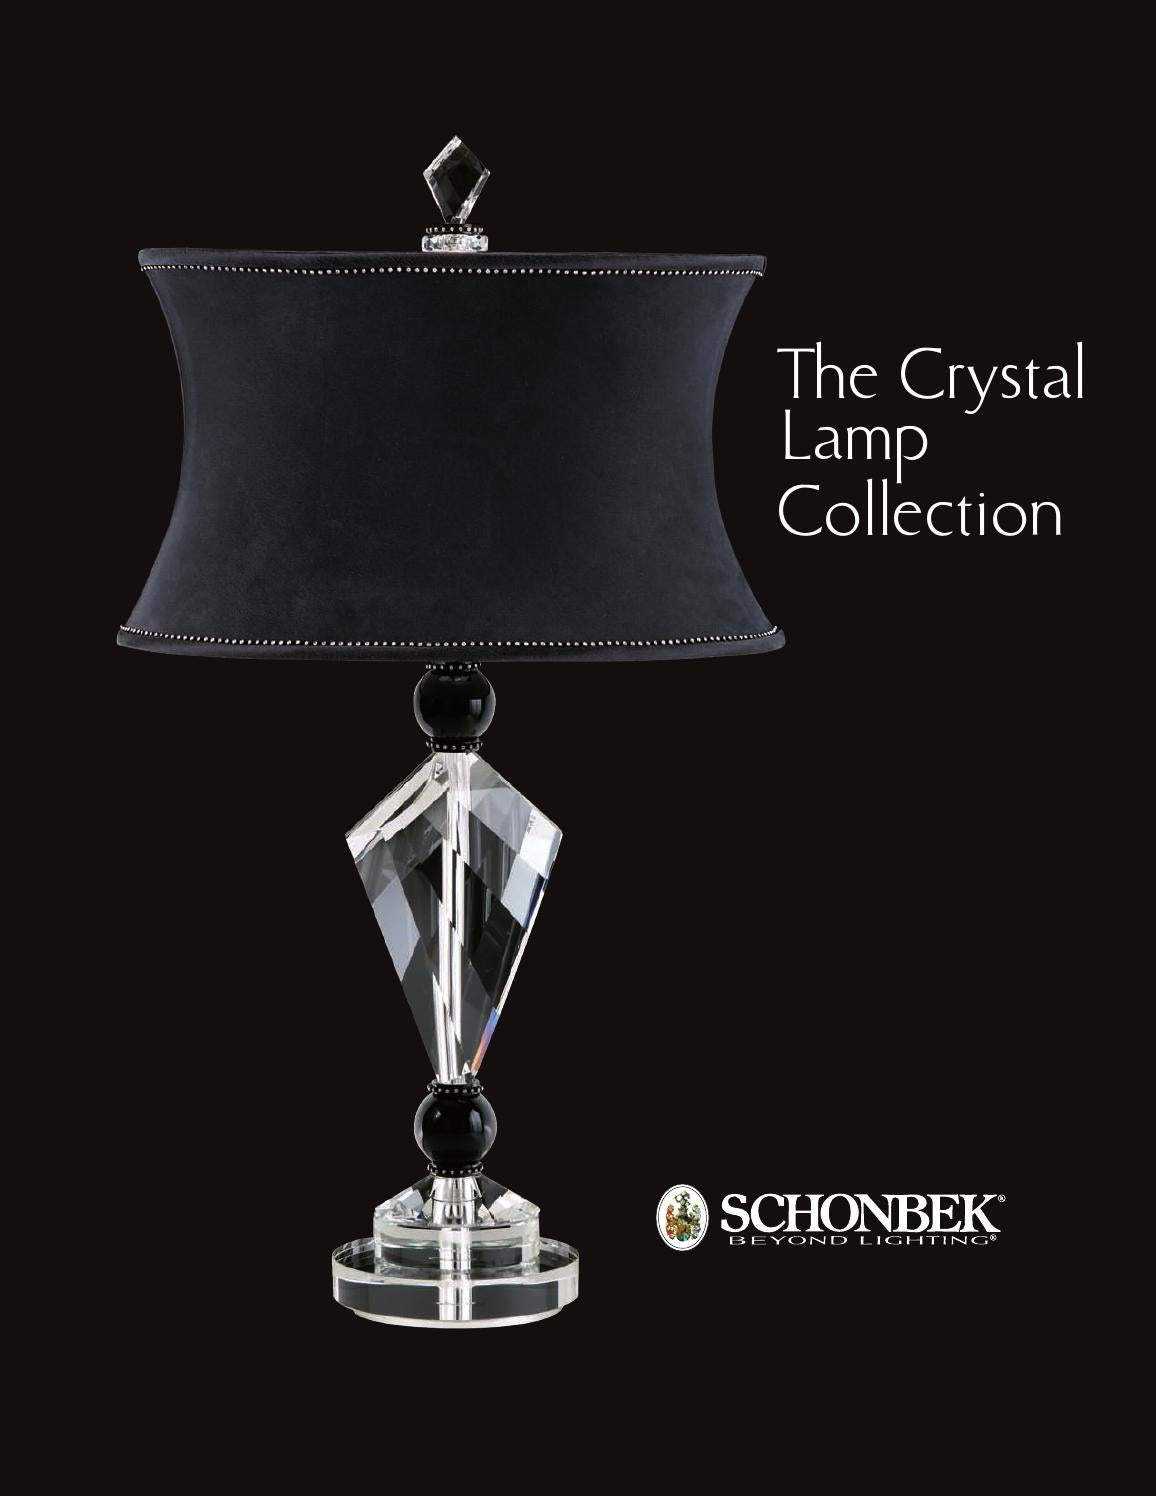 schonbek the crystal lamp collection